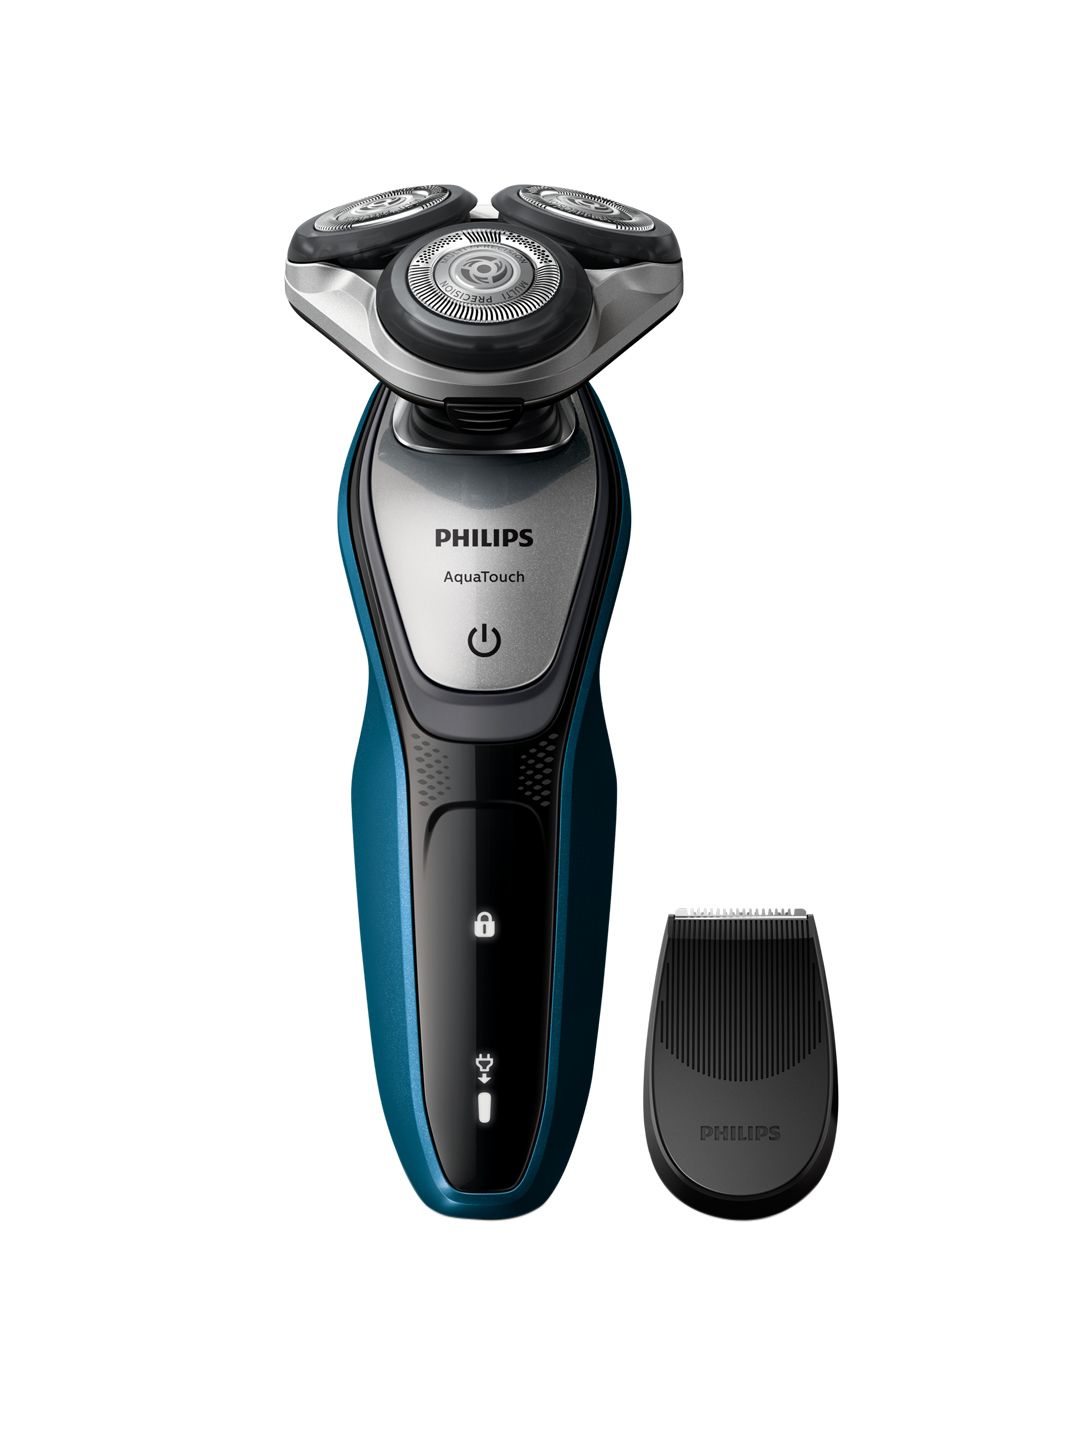 Philips Men Black Aqua Touch Wet Or Dry Shaver S 06 In